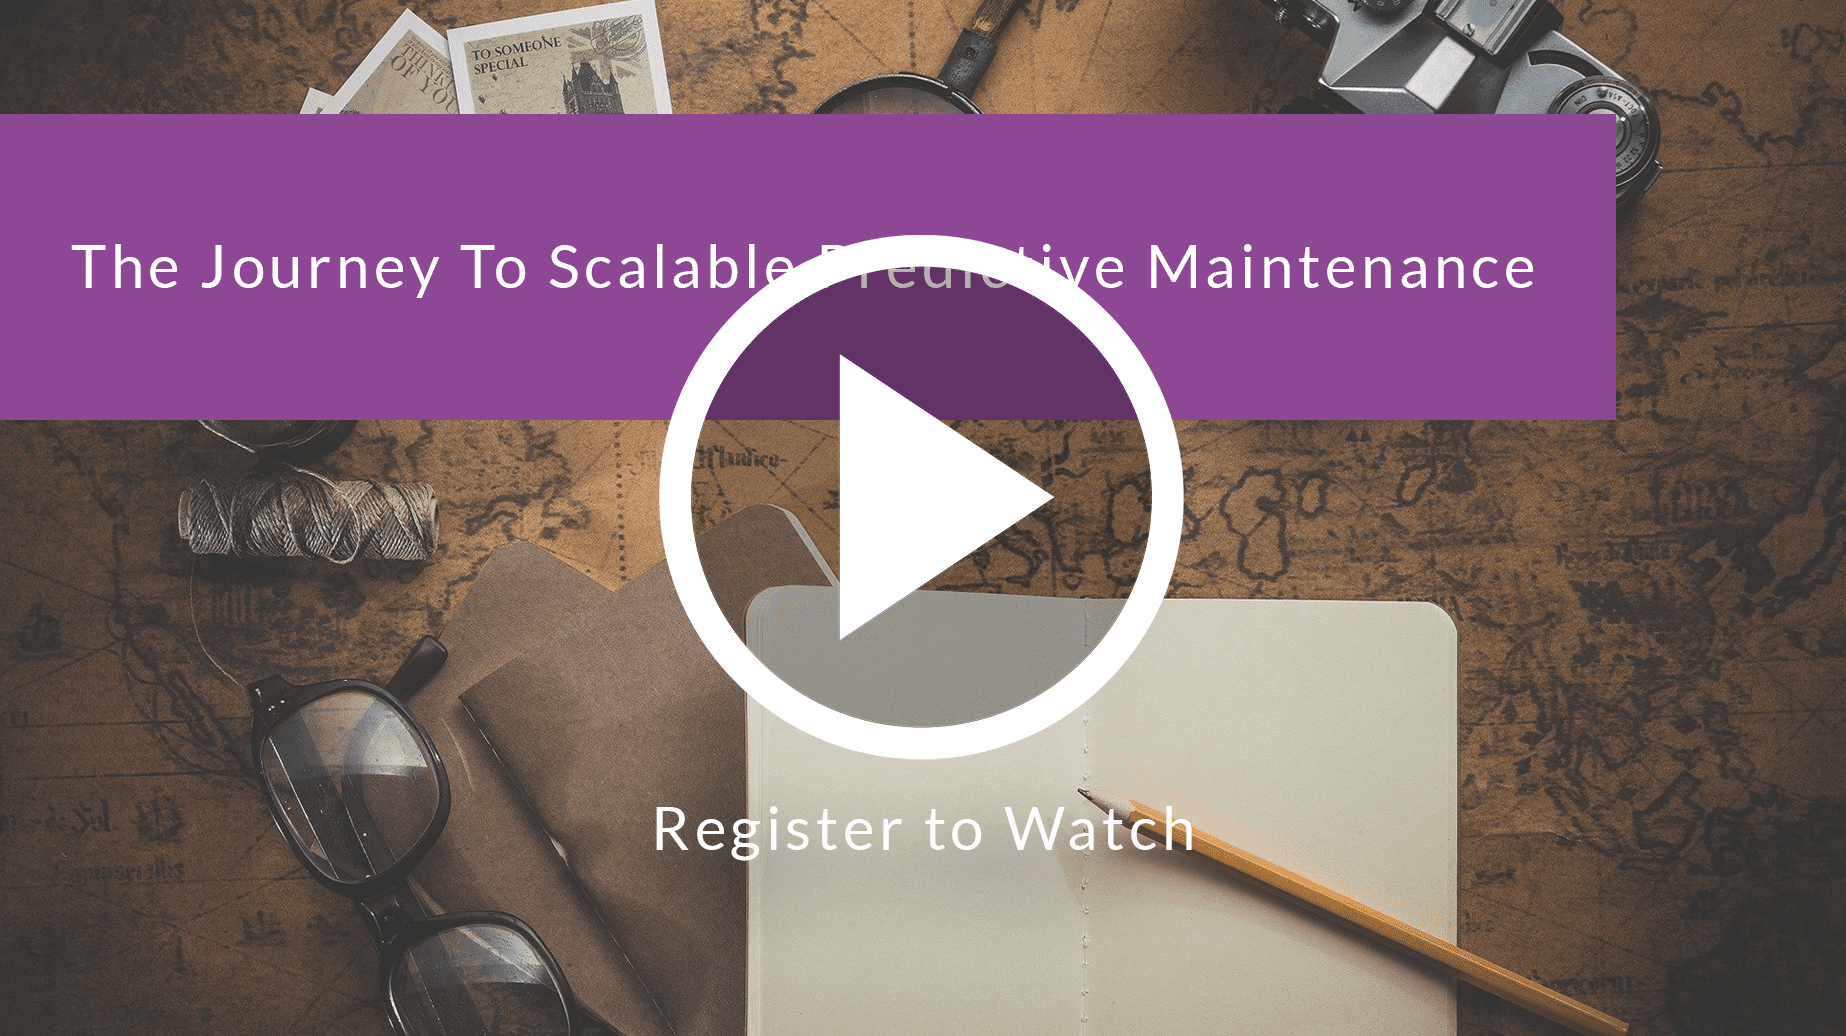 The Journey to Scalable Predictive Maintenance